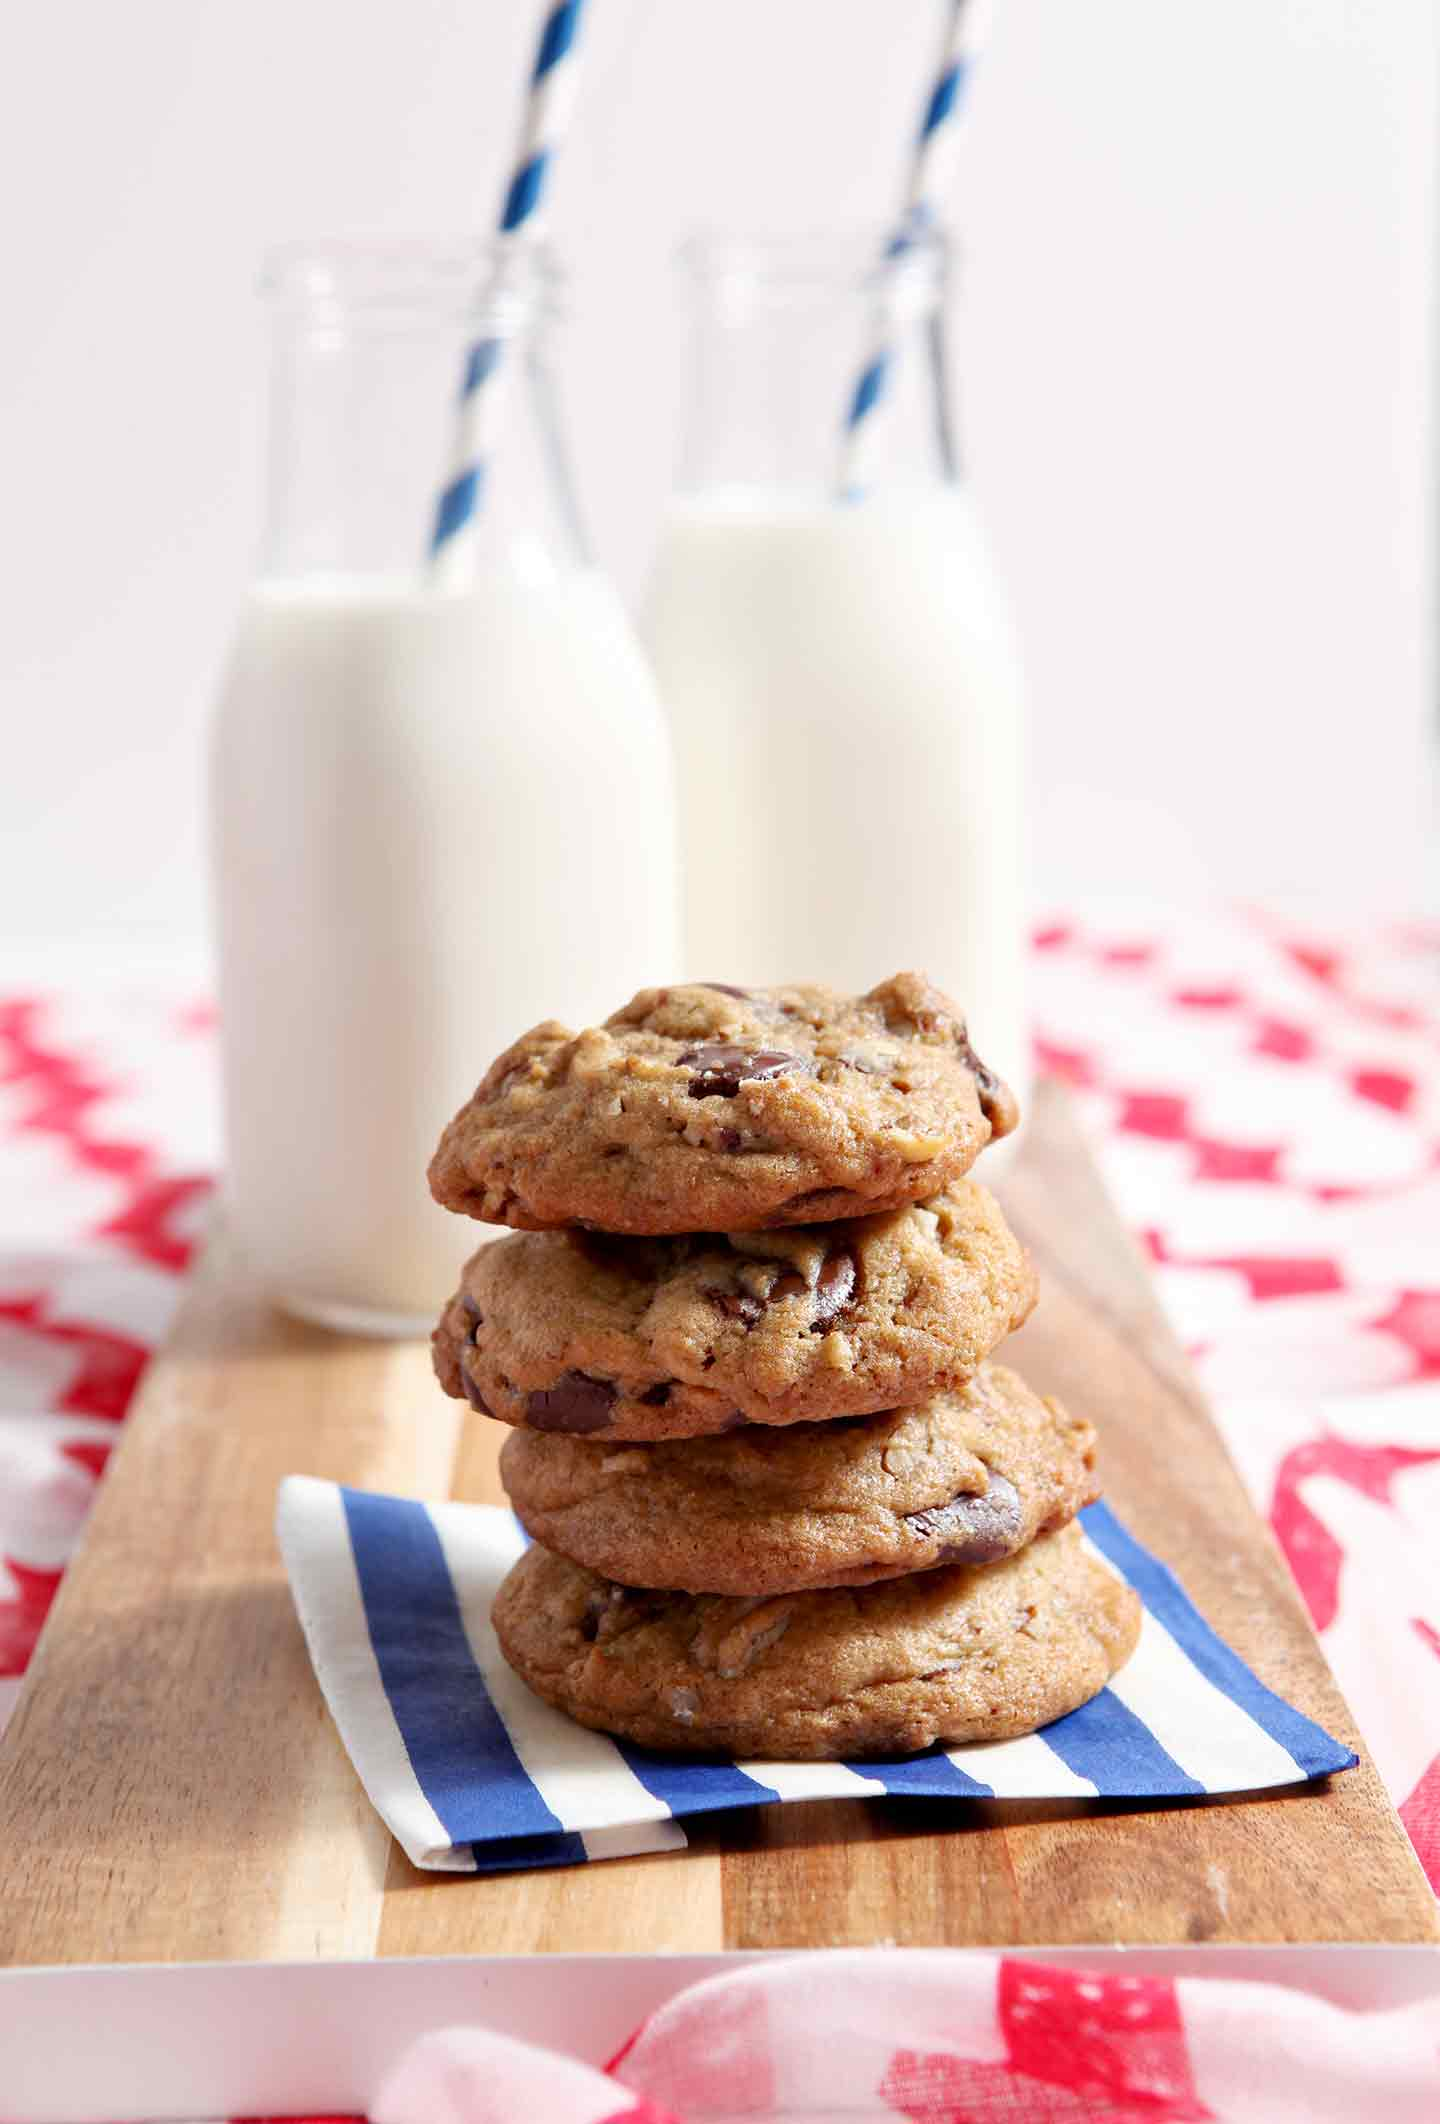 ... often than not, I crave these All-American Chocolate Chip Cookies